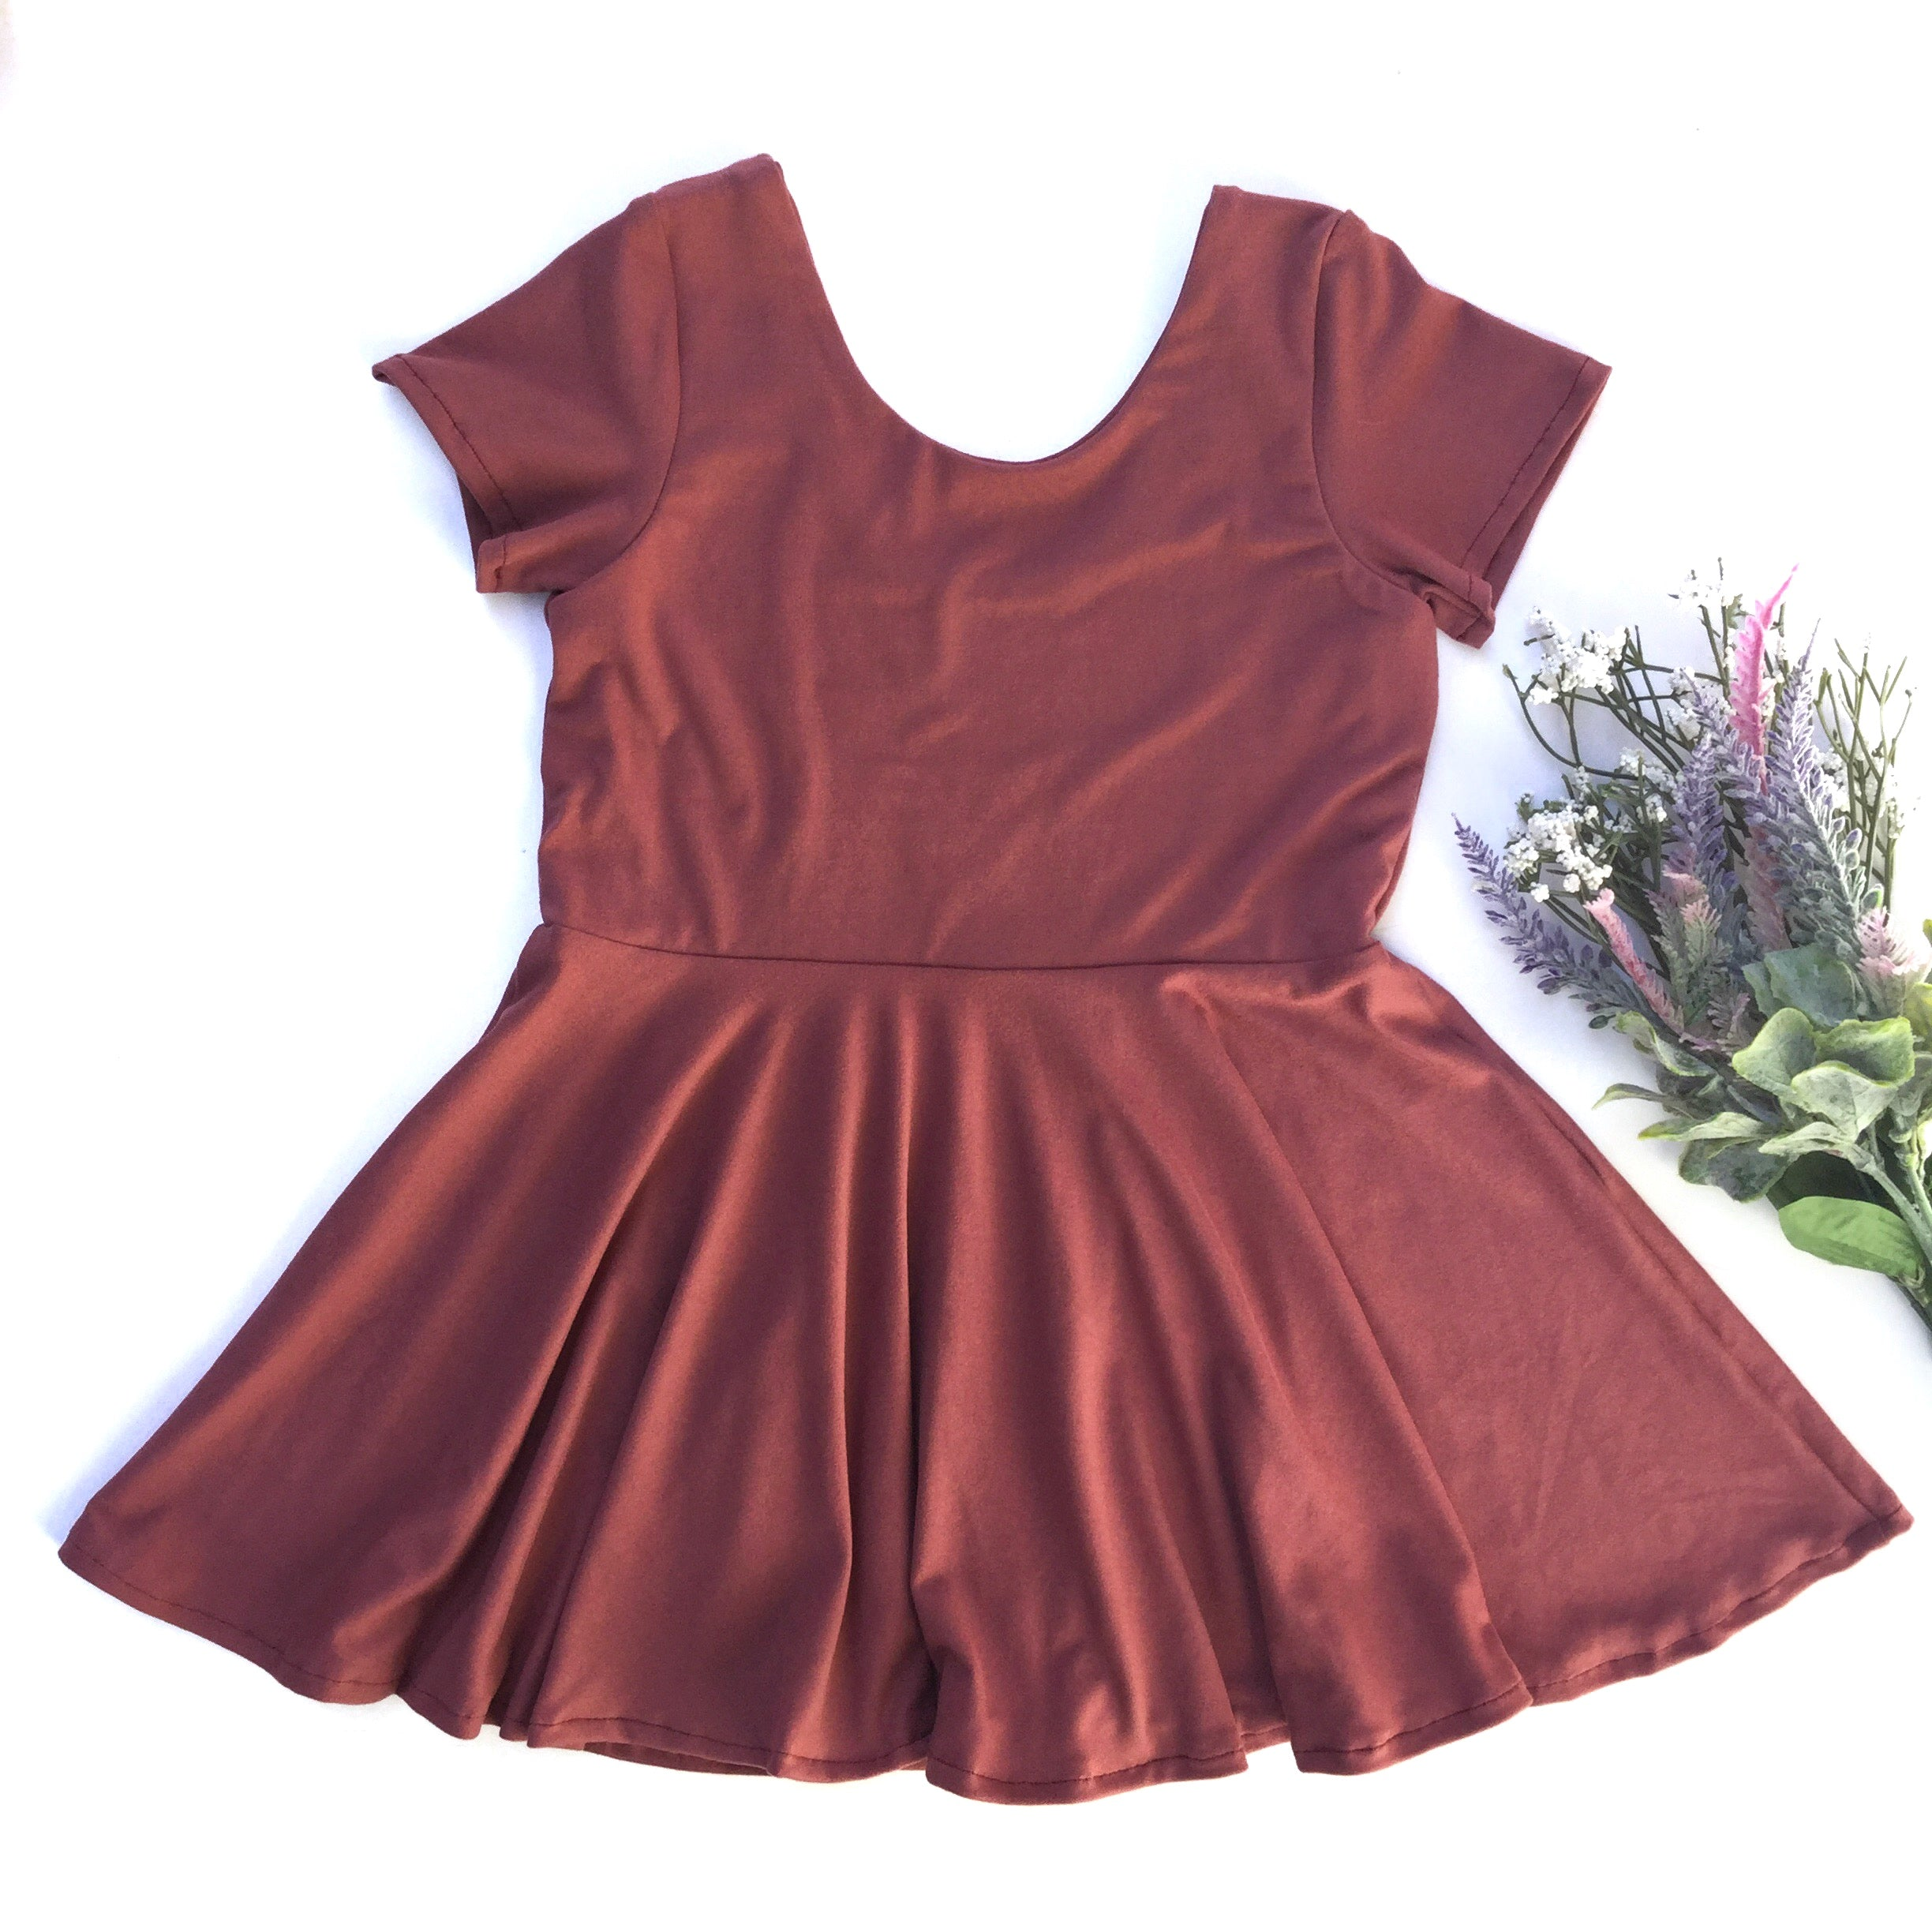 mauve twirl dress for toddler girls from little posh babes